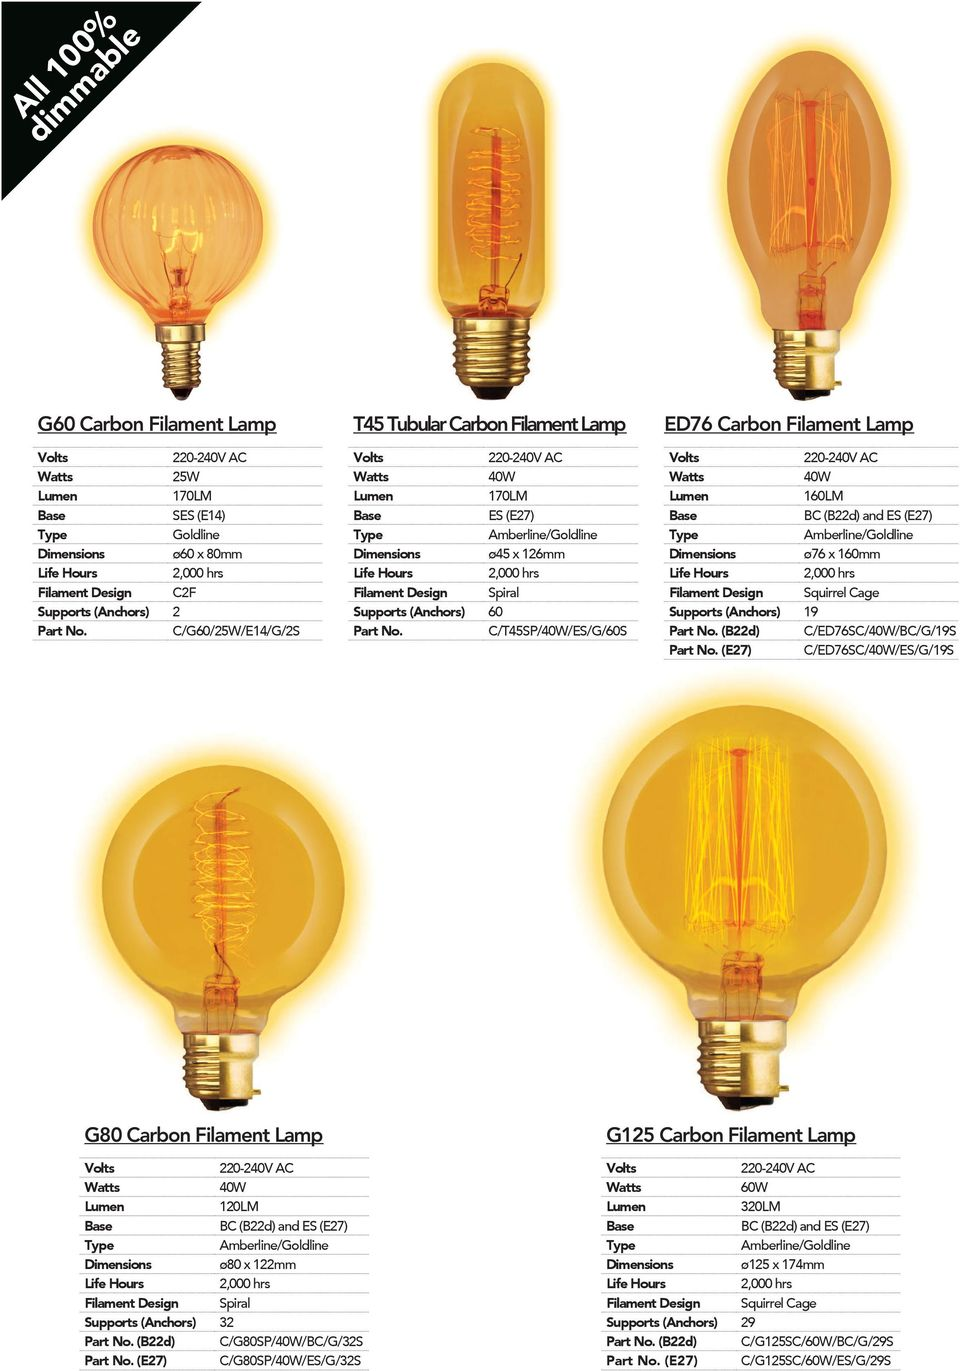 (Anchors) 19 (B22d) C/ED76SC/40W/BC/G/19S (E27) C/ED76SC/40W/ES/G/19S G80 Carbon Filament Lamp 40W 120LM Dimensions ø80 x 122mm Filament Design Spiral Supports (Anchors) 32 (B22d)